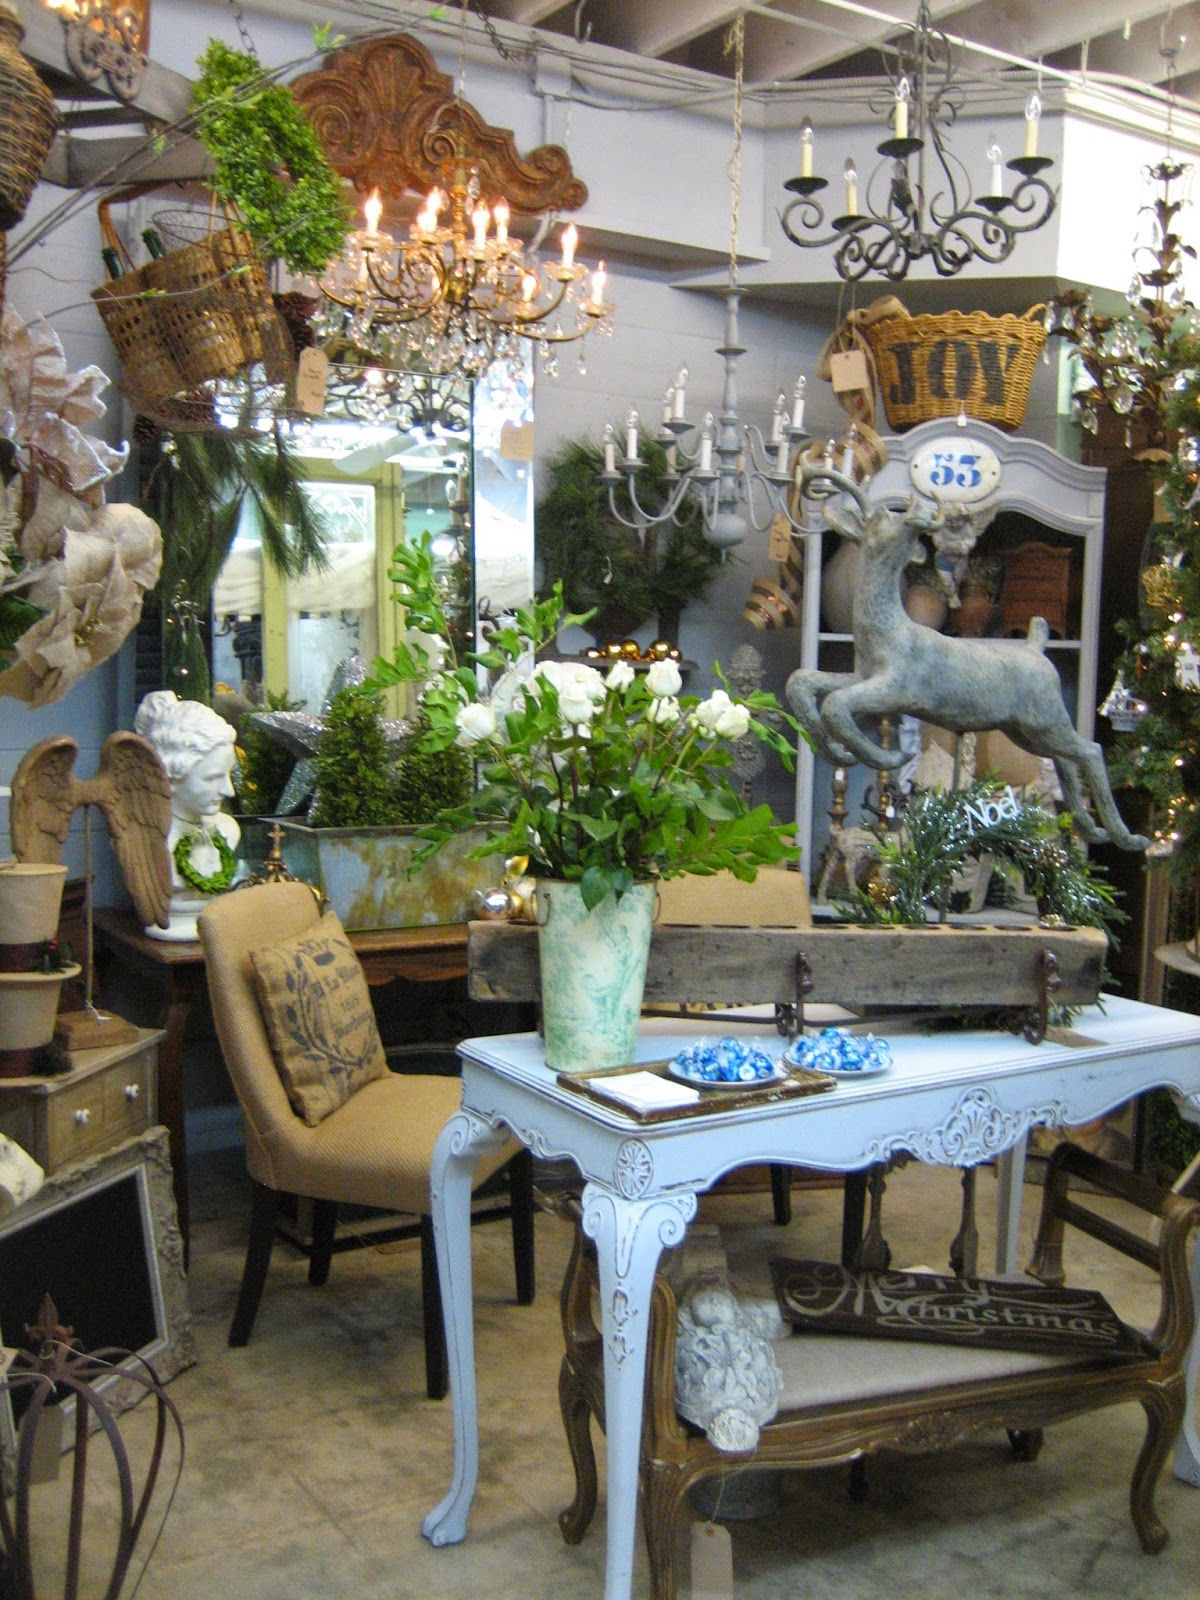 This Upscale Shop Carries Antique French Furniture U0026 Garden Decorations.  Located Just 6 Miles From Downtown San Diego In The Ocean Beach Antique  District